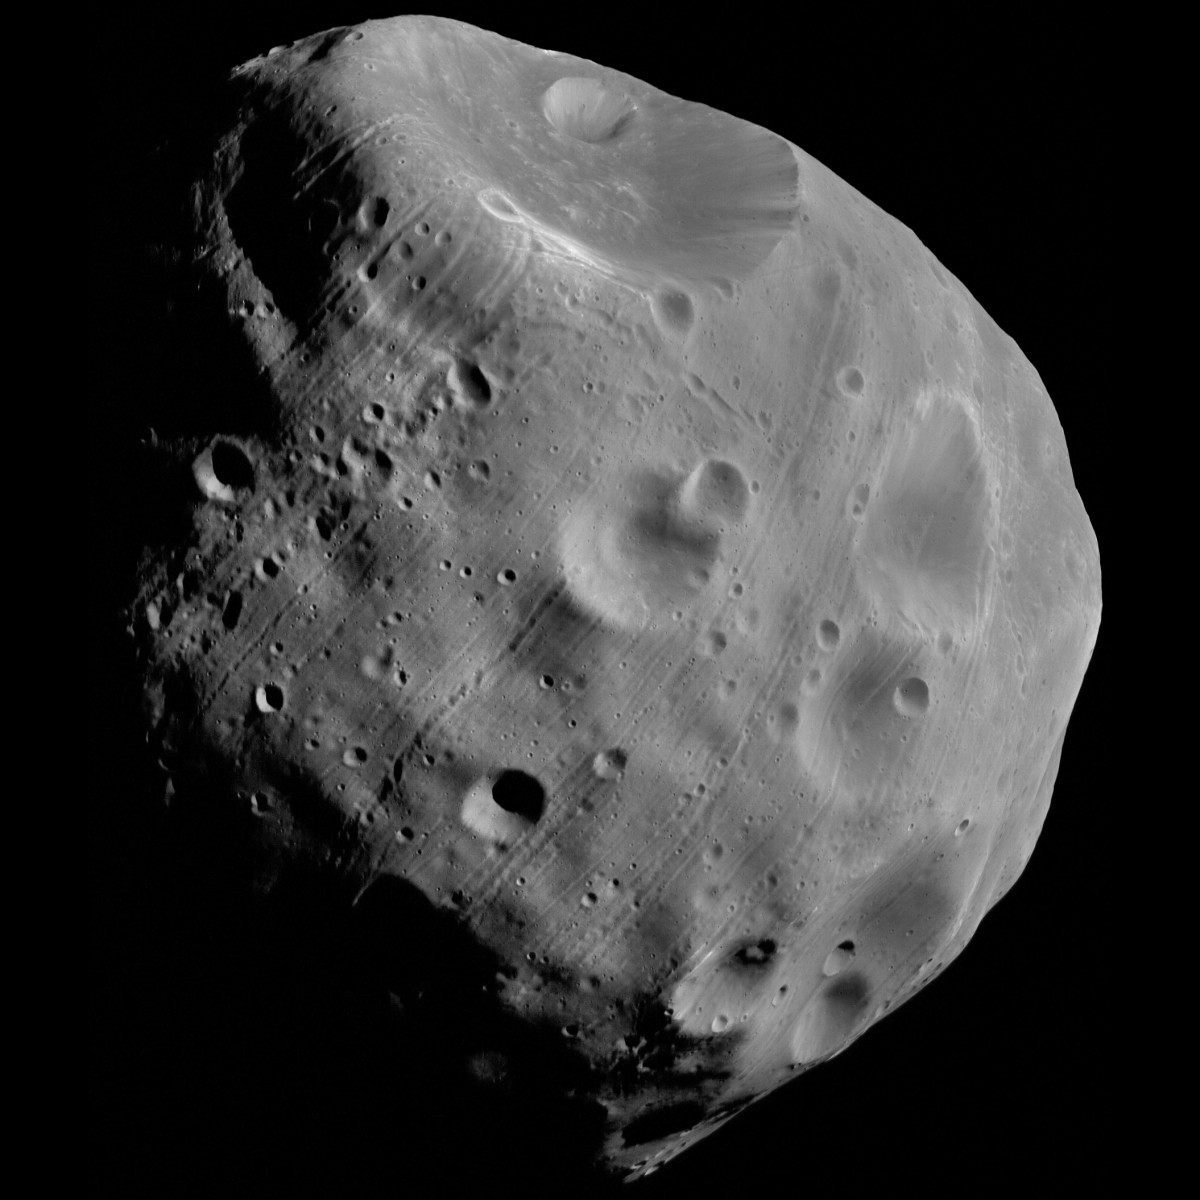 Phobos has a large crater (Stickney) on its surface.